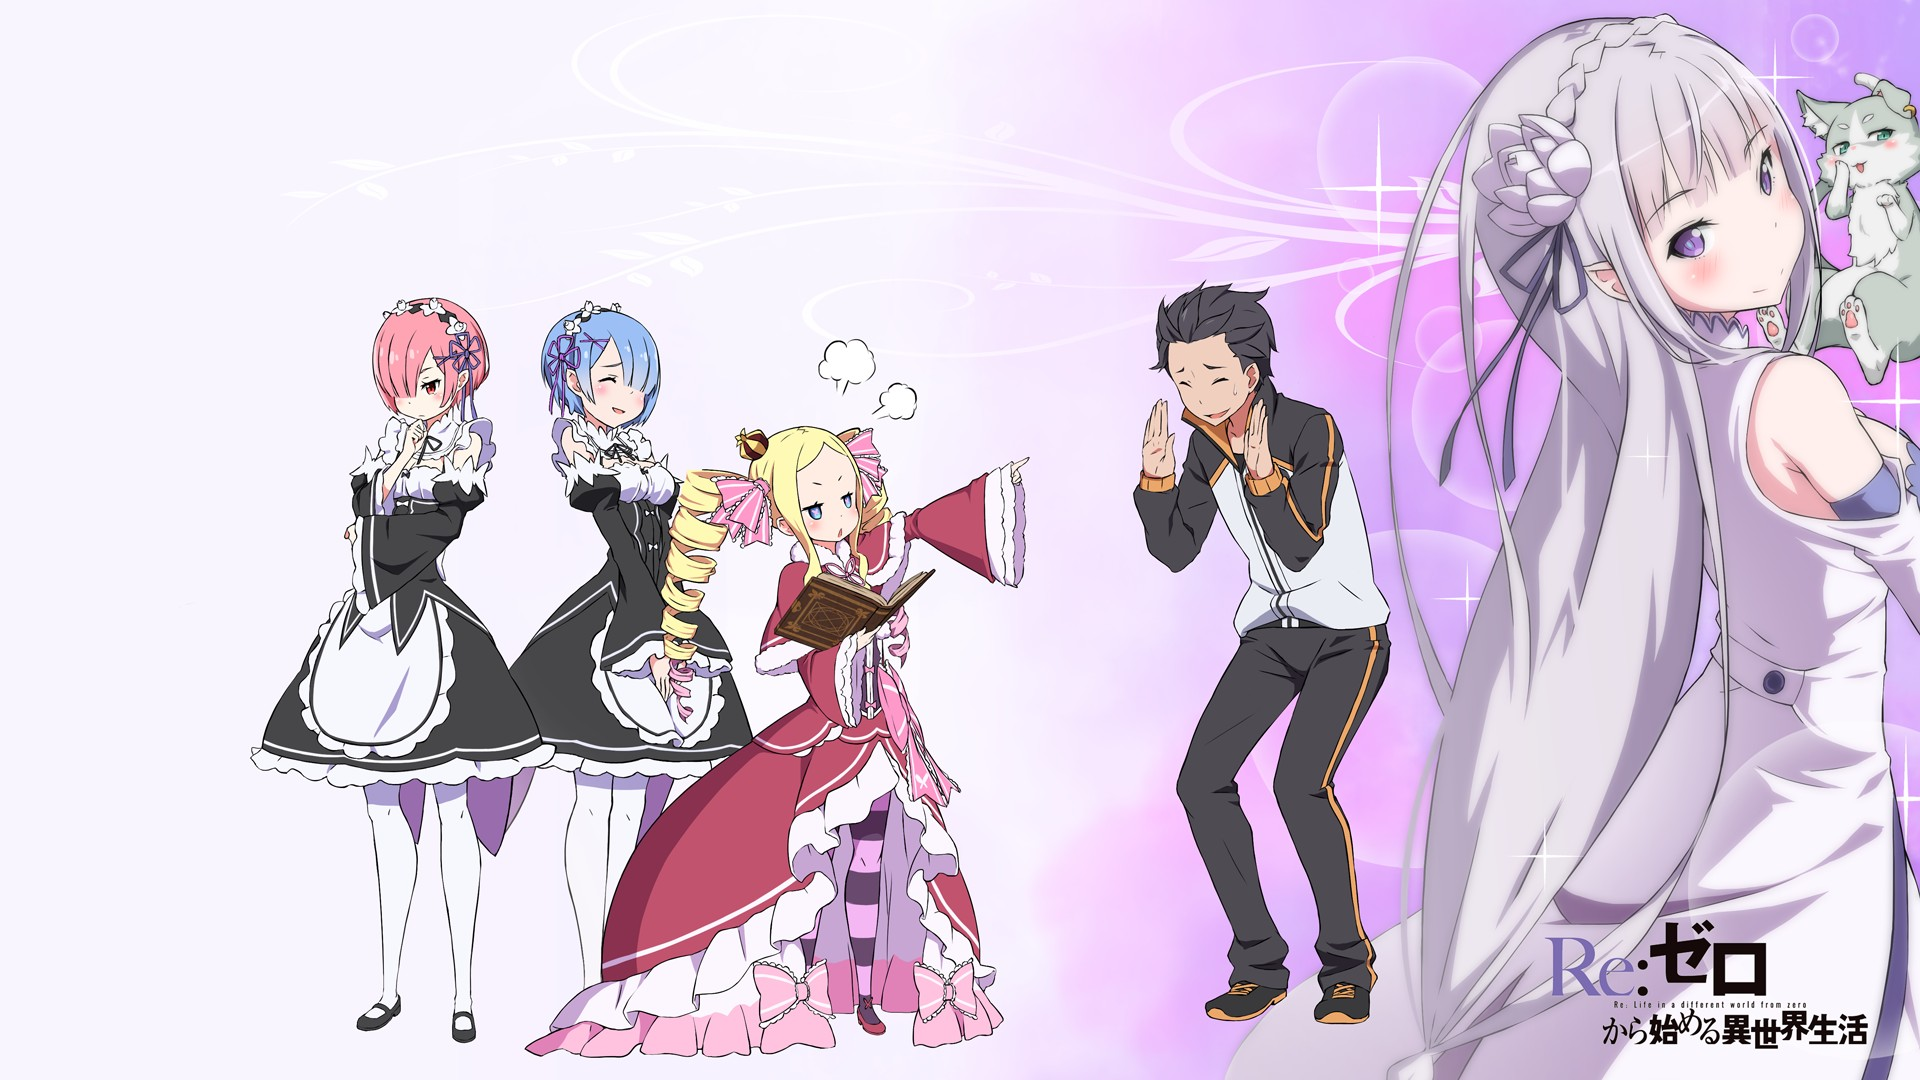 __beatrice_emilia_natsuki_subaru_puck_ram_and_others_re_zero_kara_hajimeru_isekai_seikatsu_drawn_by_sando_dukedevil__dfb8cdffd7c7bc38242aaa67c6eb2ab1.jpg